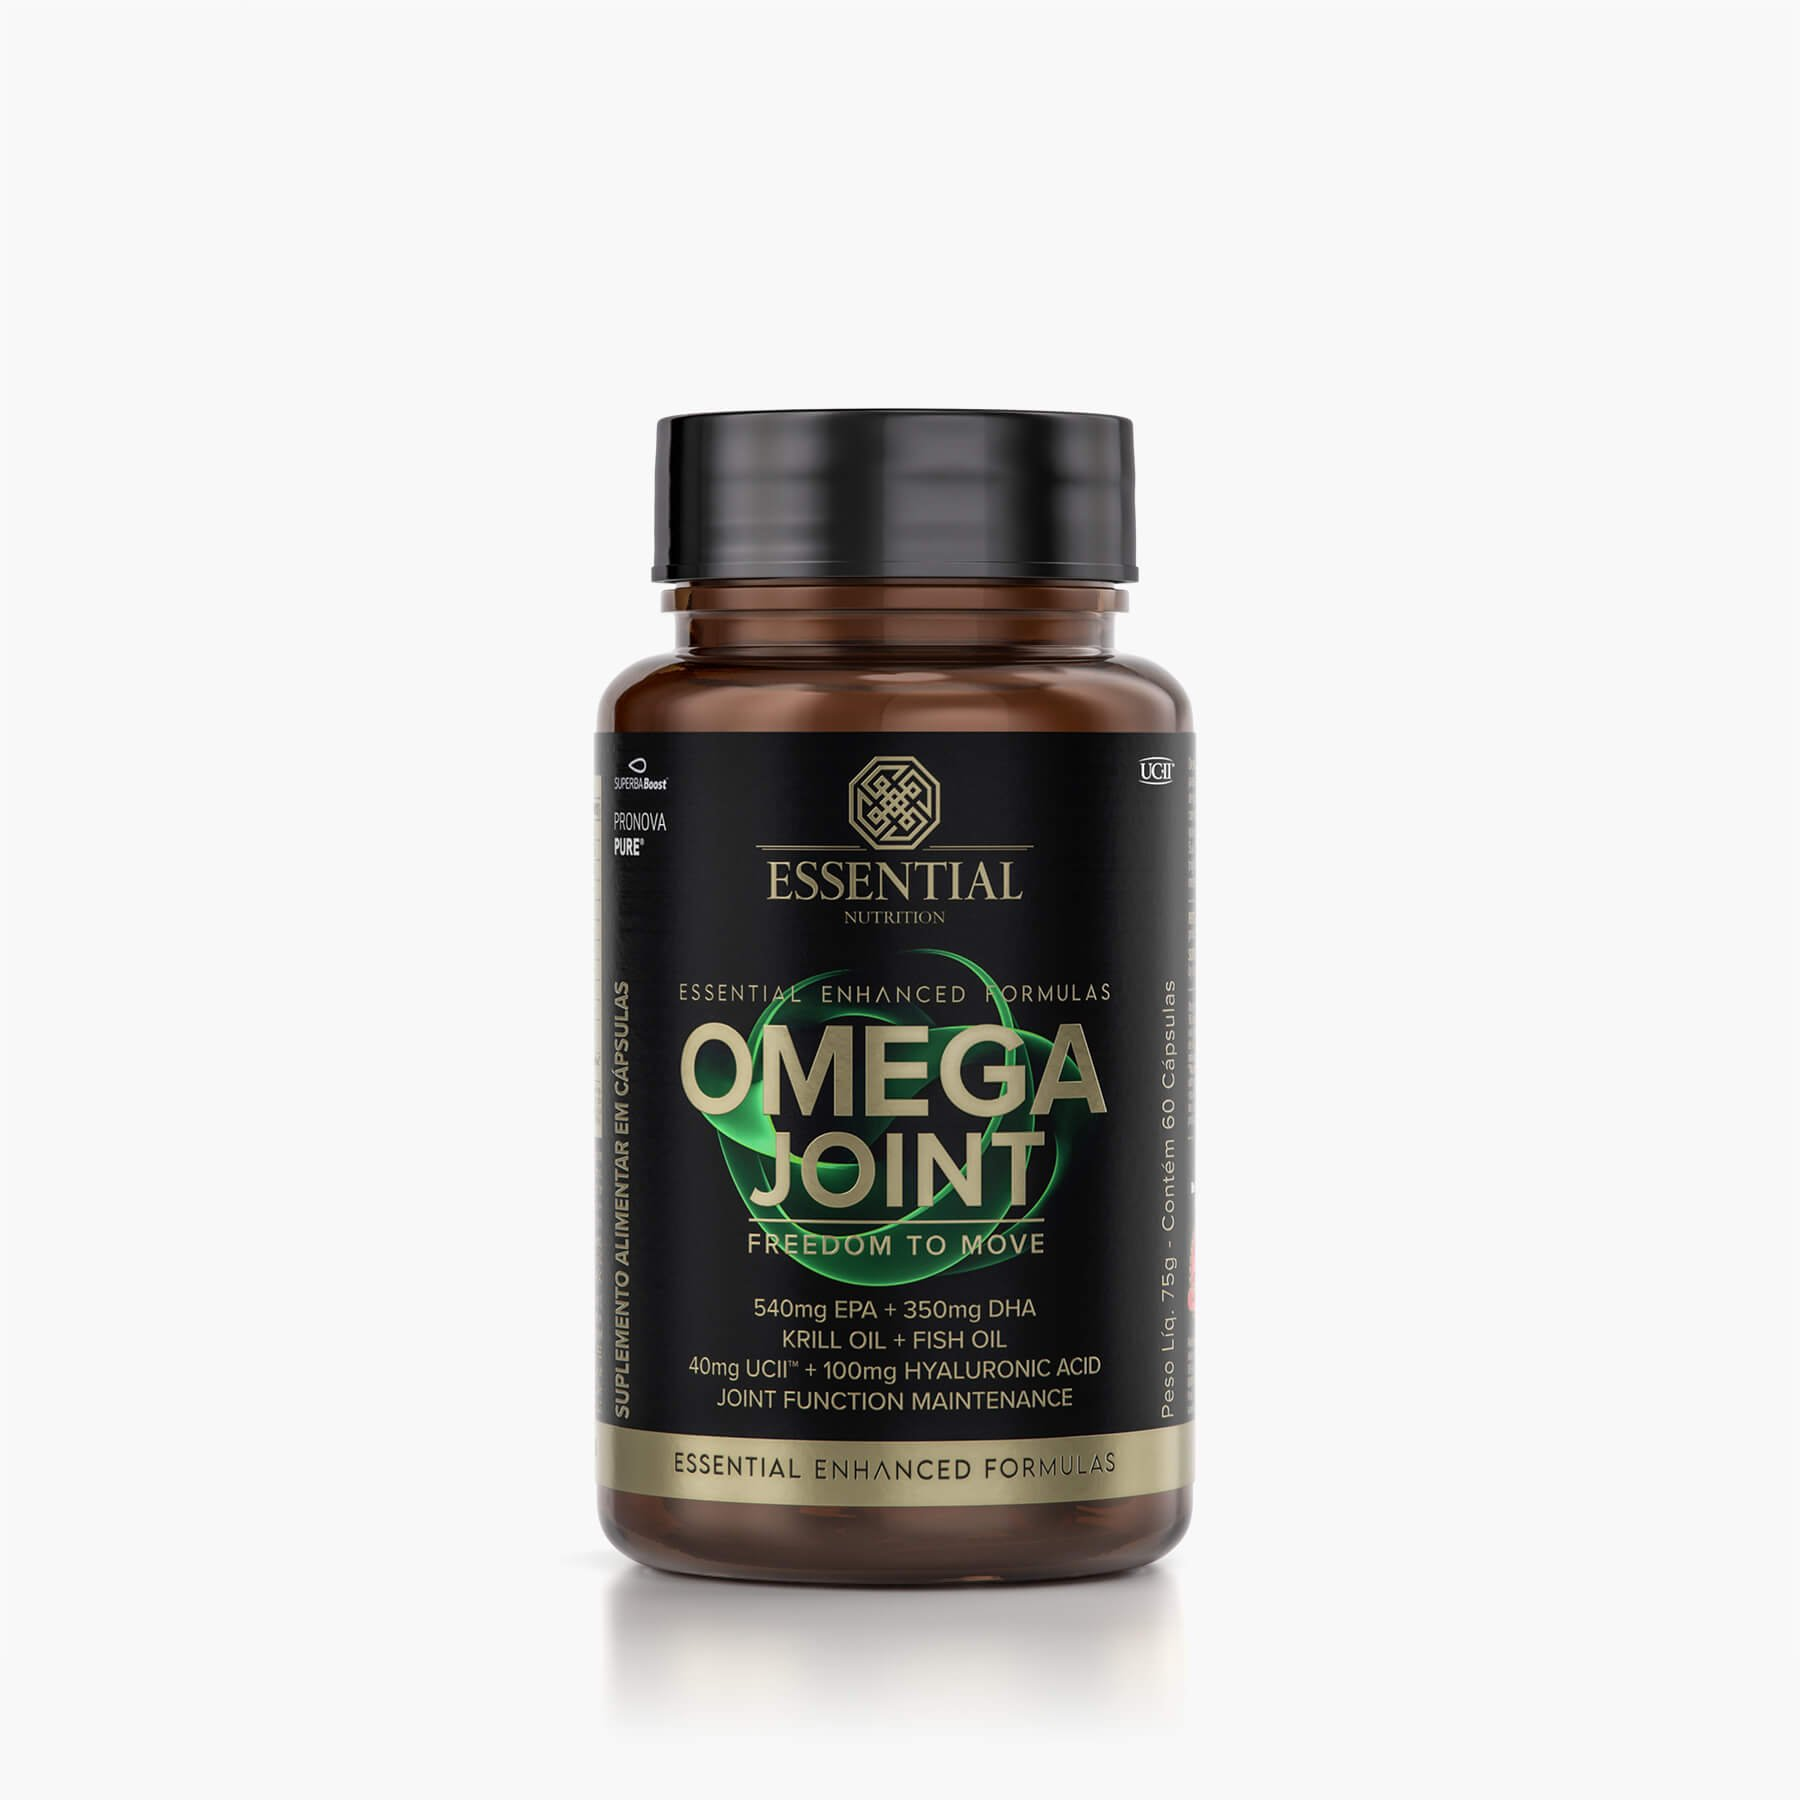 ESSENTIAL OMEGA JOINT 60 cápsulas - 30 doses